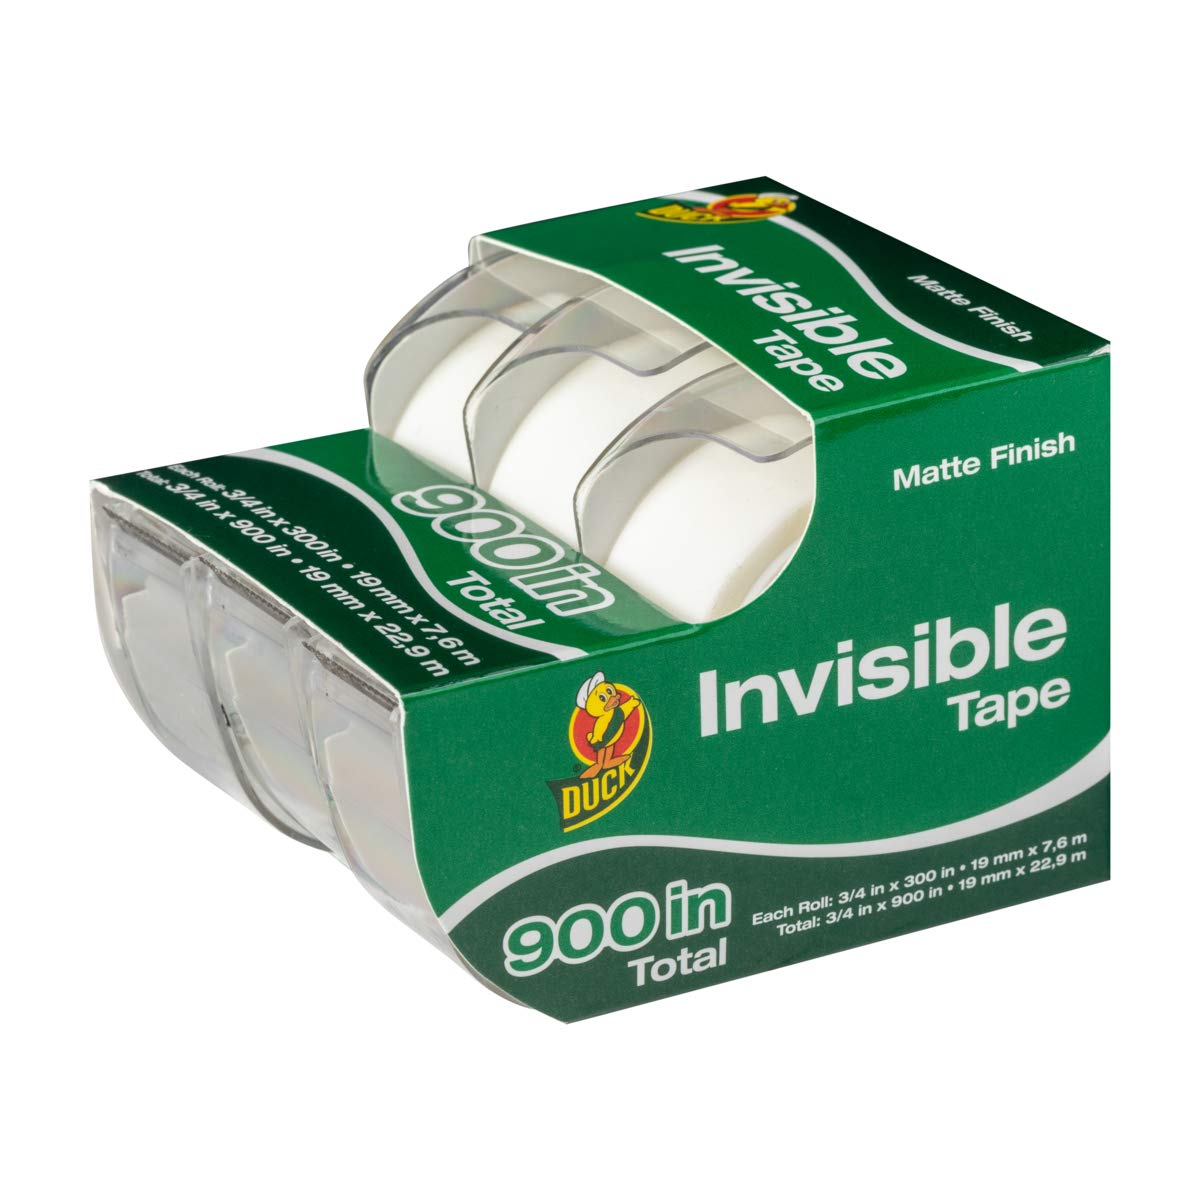 10 Rolls Duck Brand Matte Finish Invisible Tape Refill for Dispenser Each Roll 3//4-Inch x 1000 Inches for 10000 Total Inches